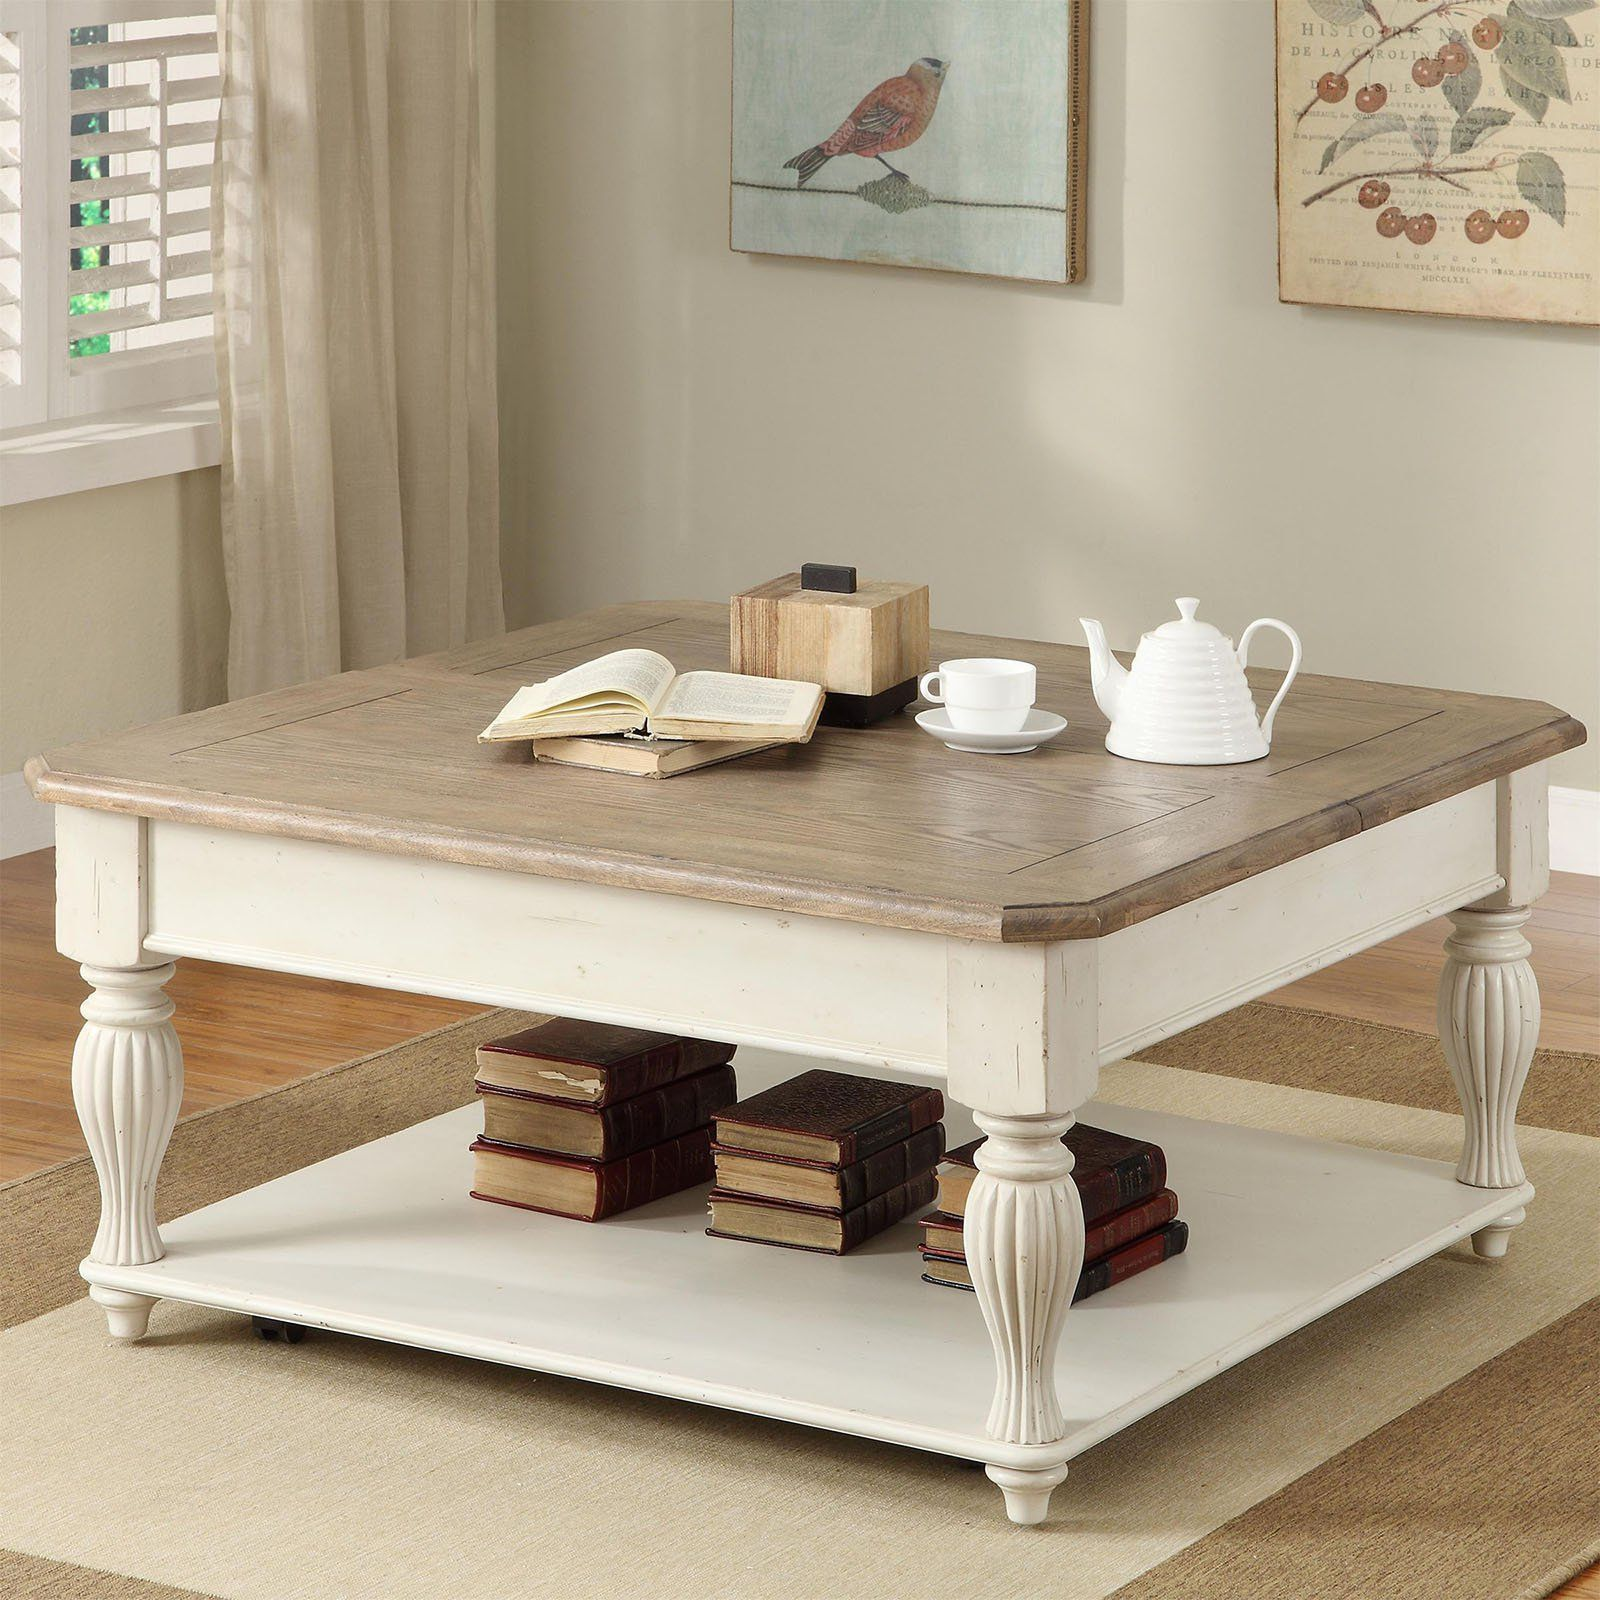 White Square Coffee Tables Table Sets For Living Room Check More At Http